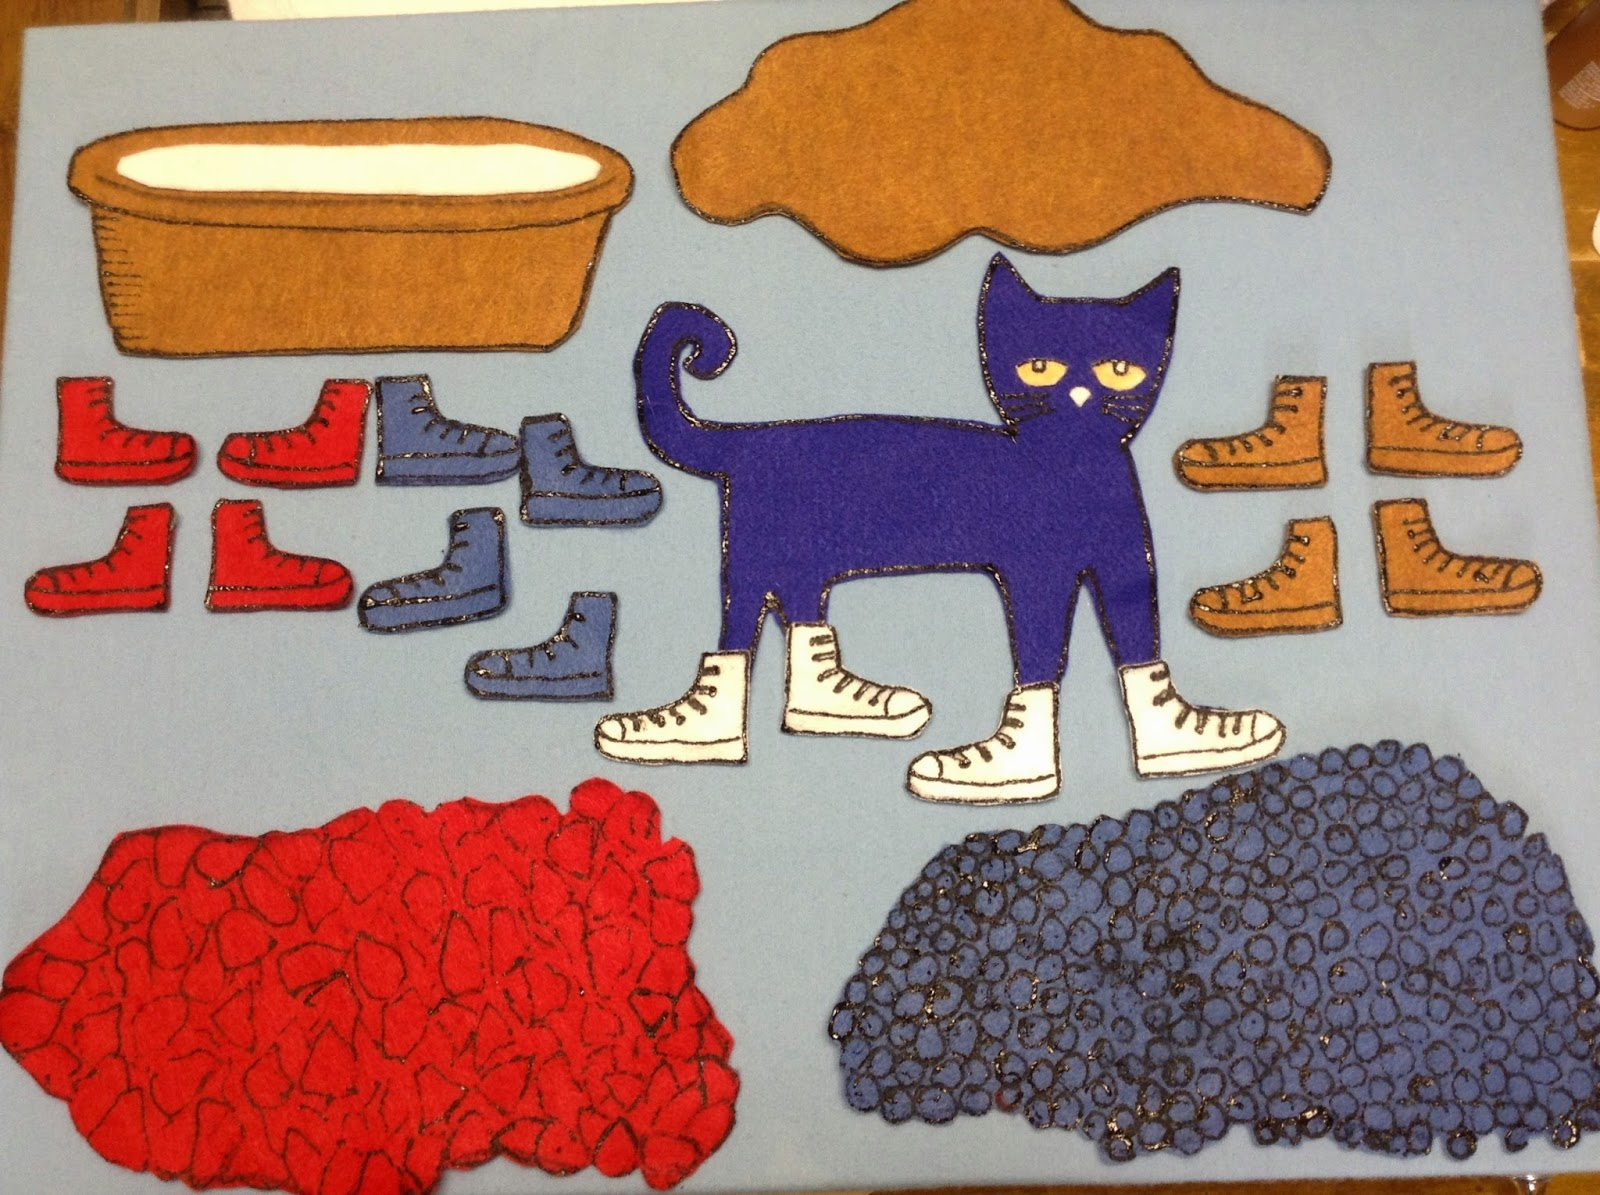 image about Printable Felt Board Stories named Child Storytime: Most loved Felt Studies, Component 2 - Jbrary